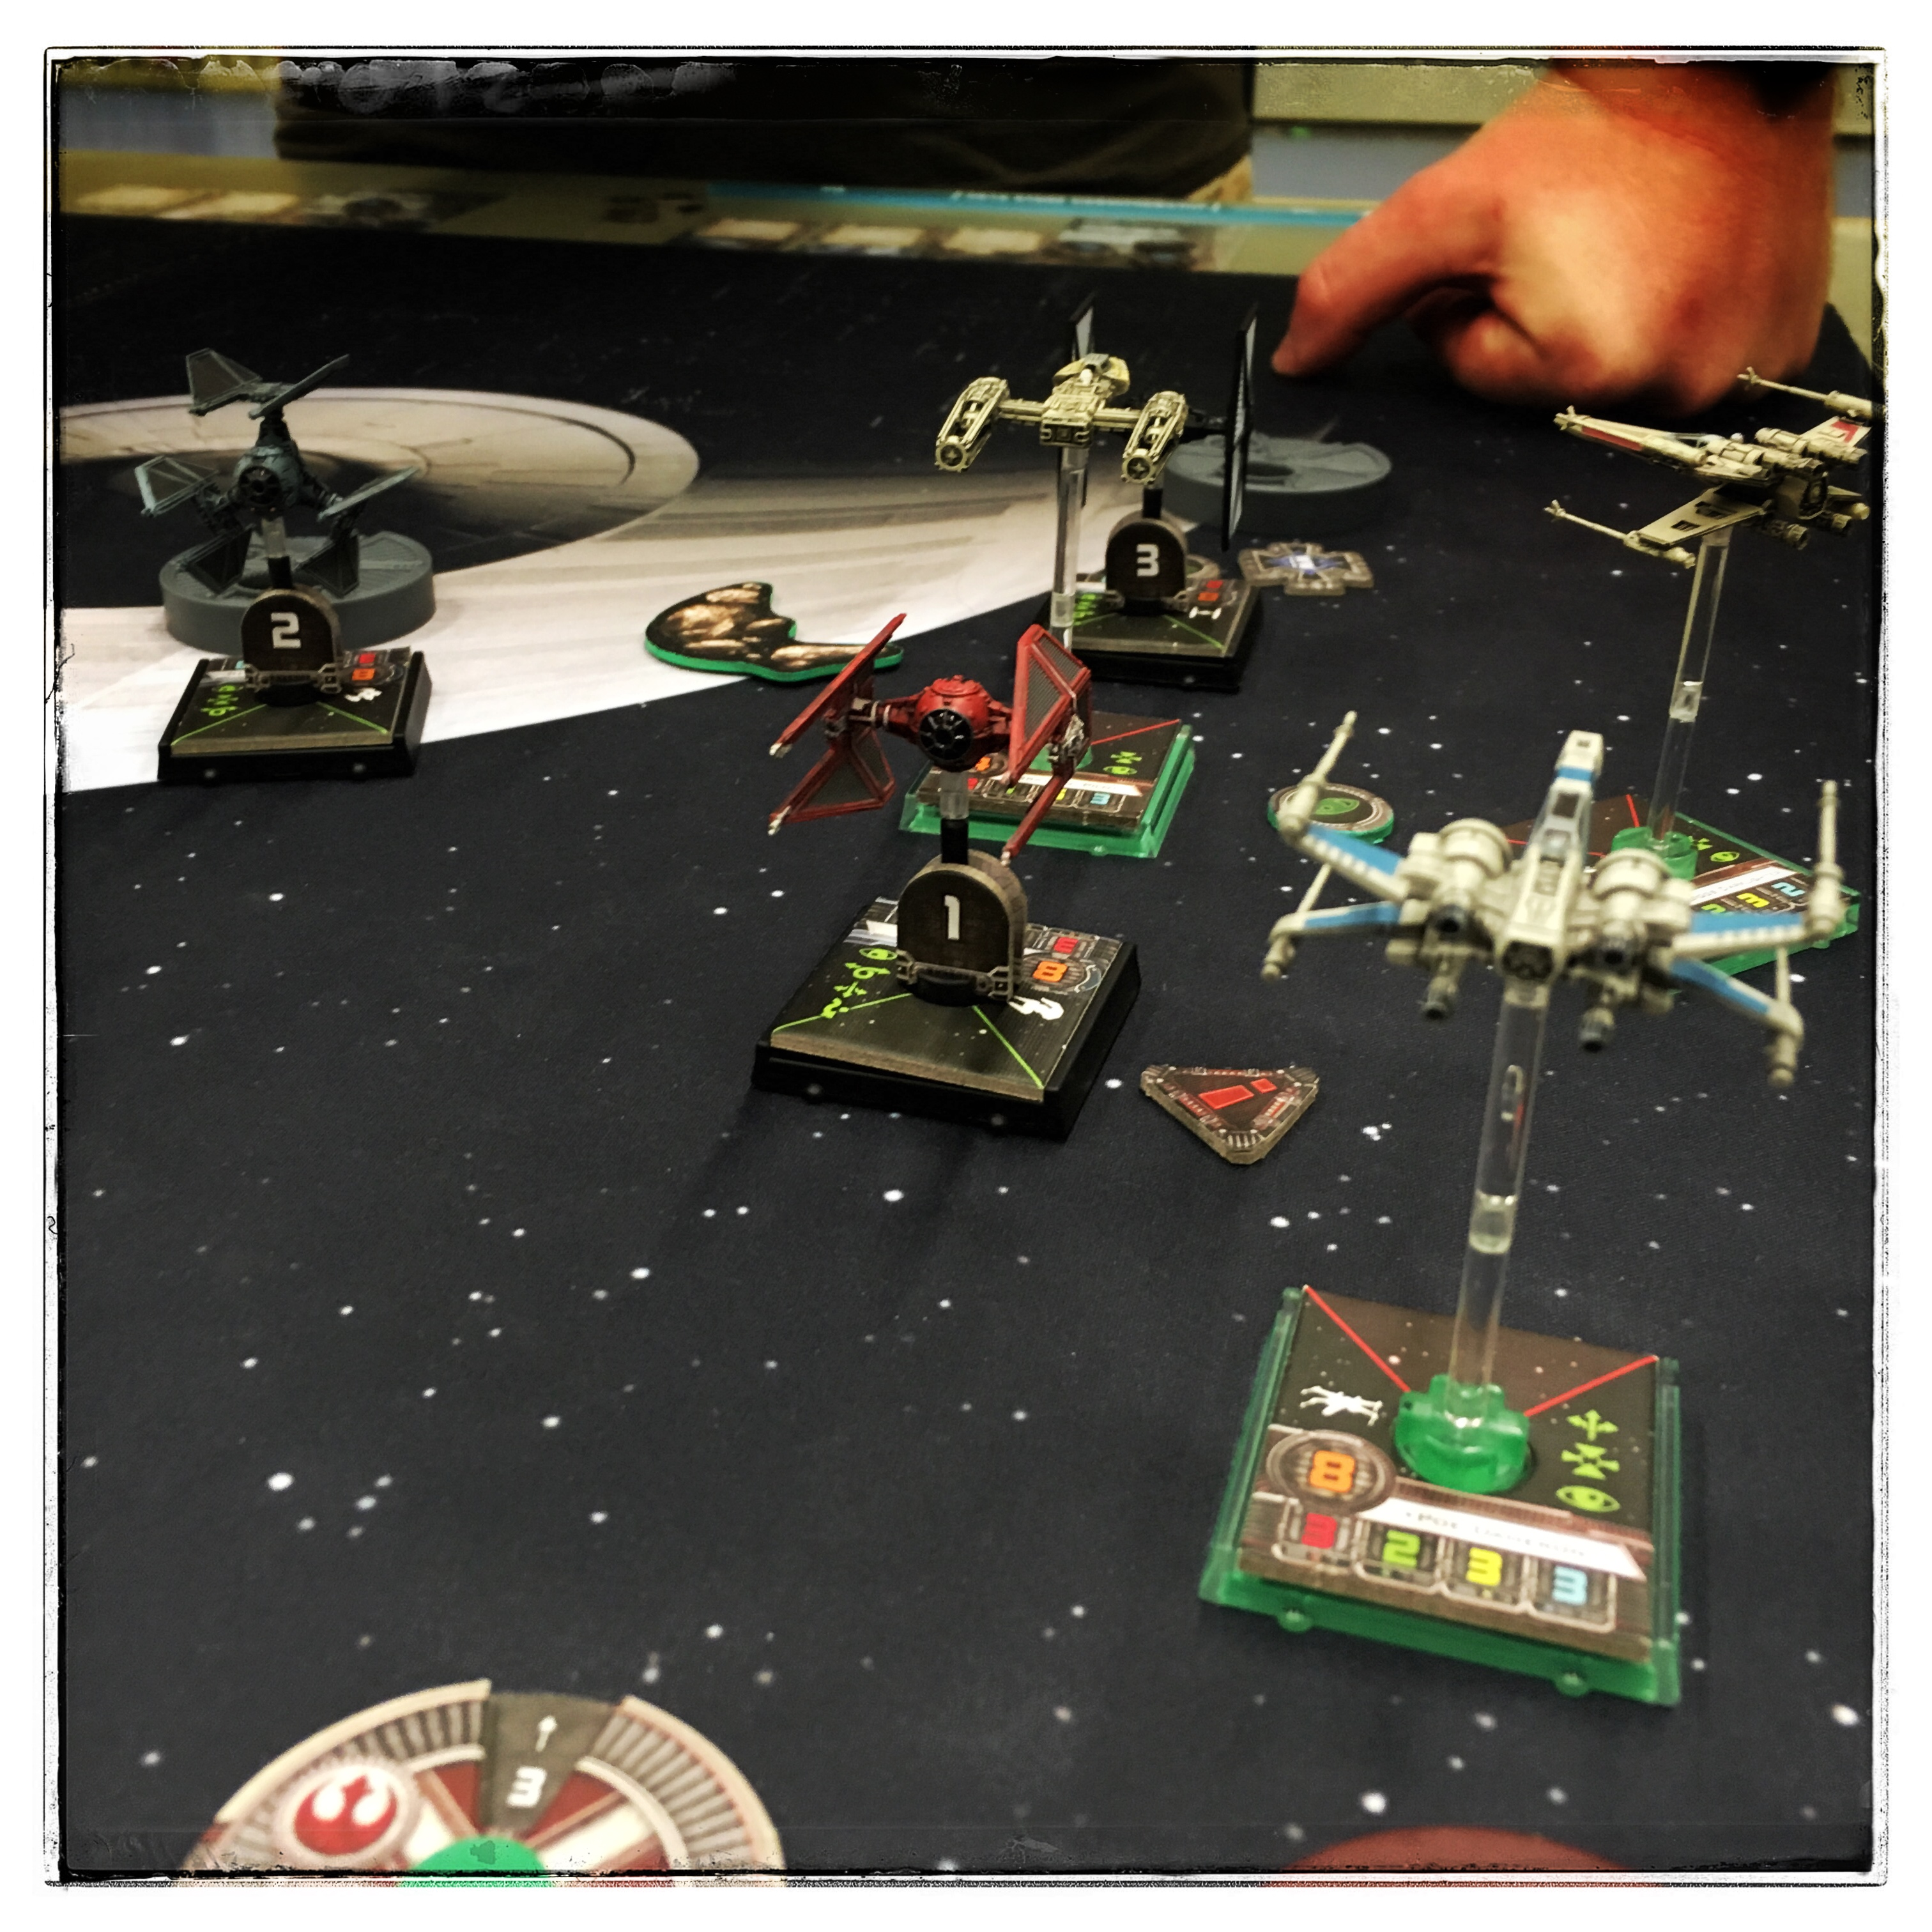 X Wing Miniatures Games Sundhults Blogg